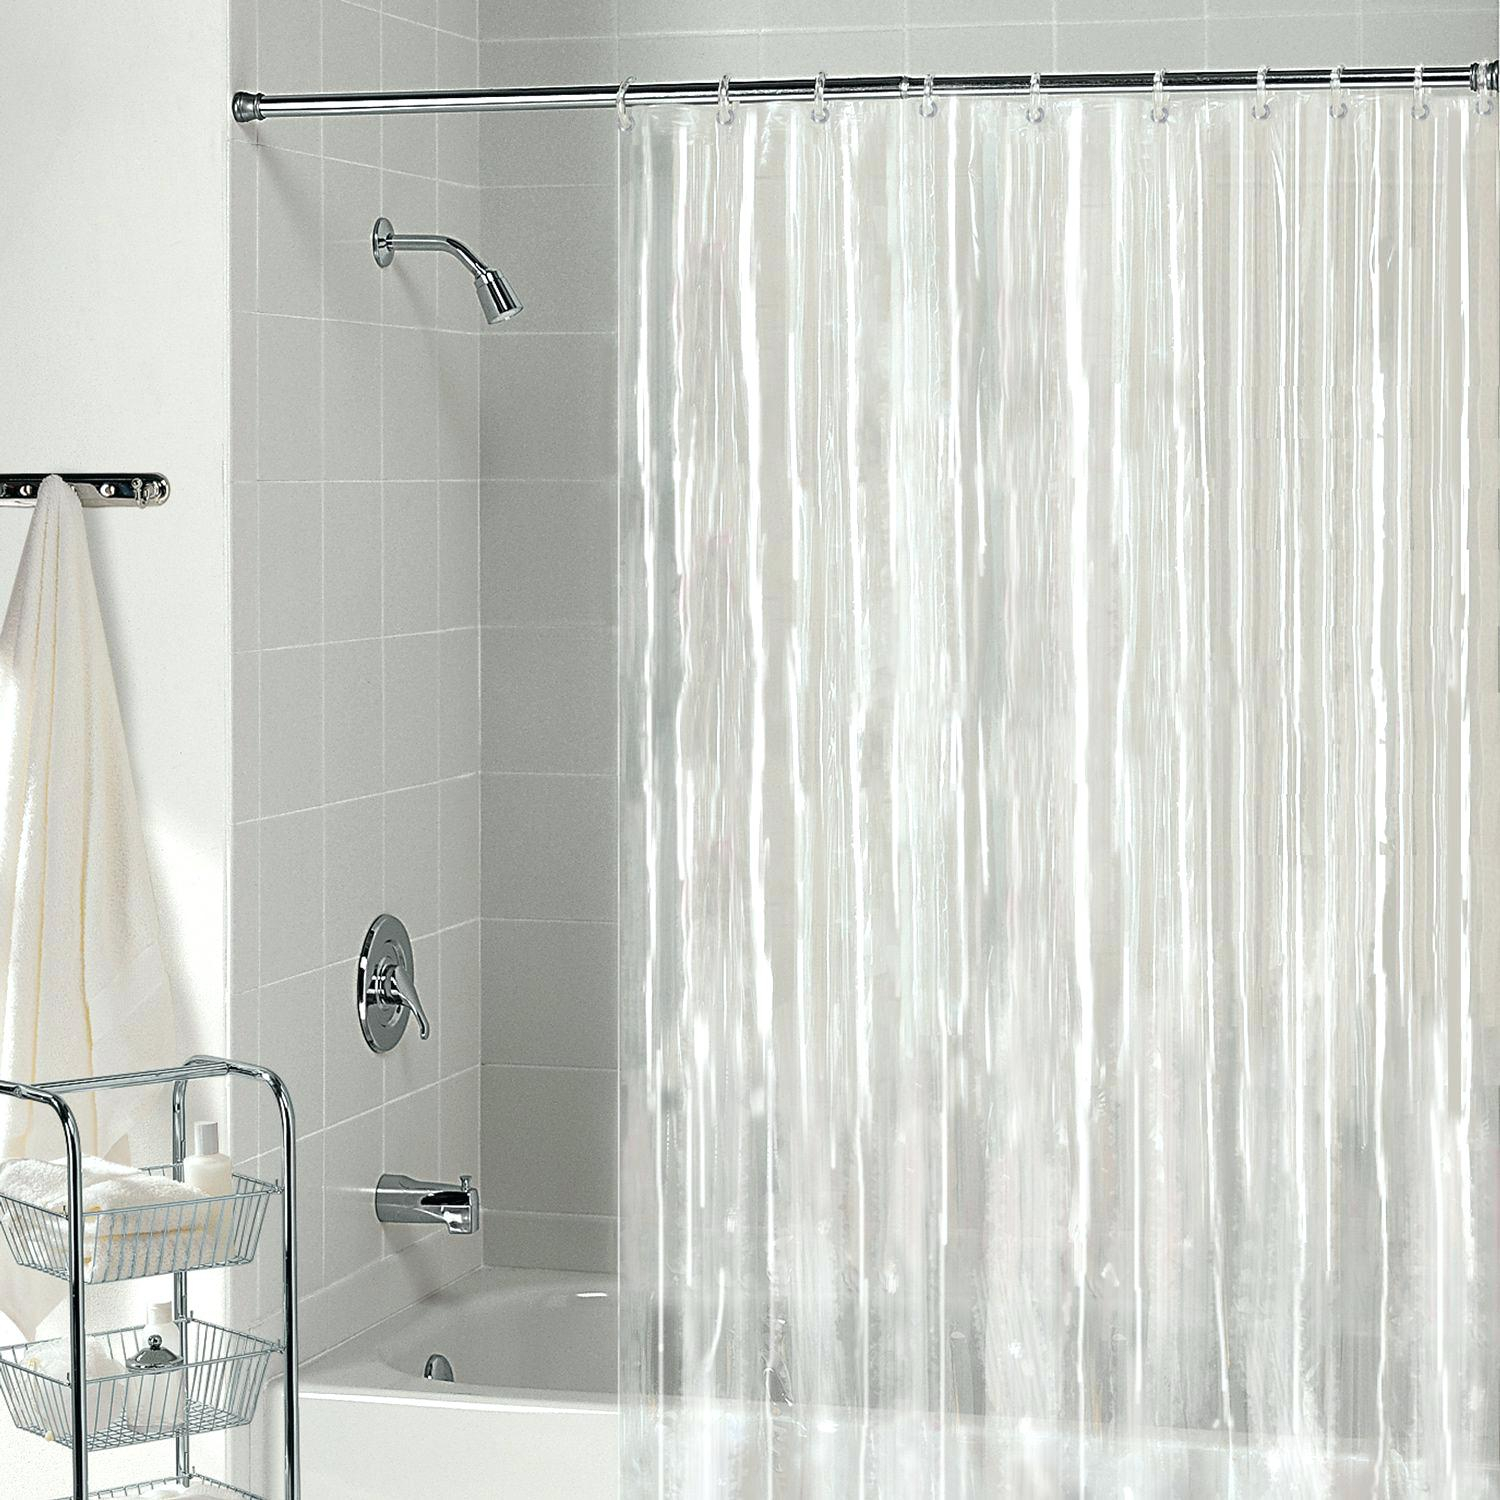 Non Toxic Vinyl Shower Curtains Shower Curtains Design intended for measurements 1500 X 1500